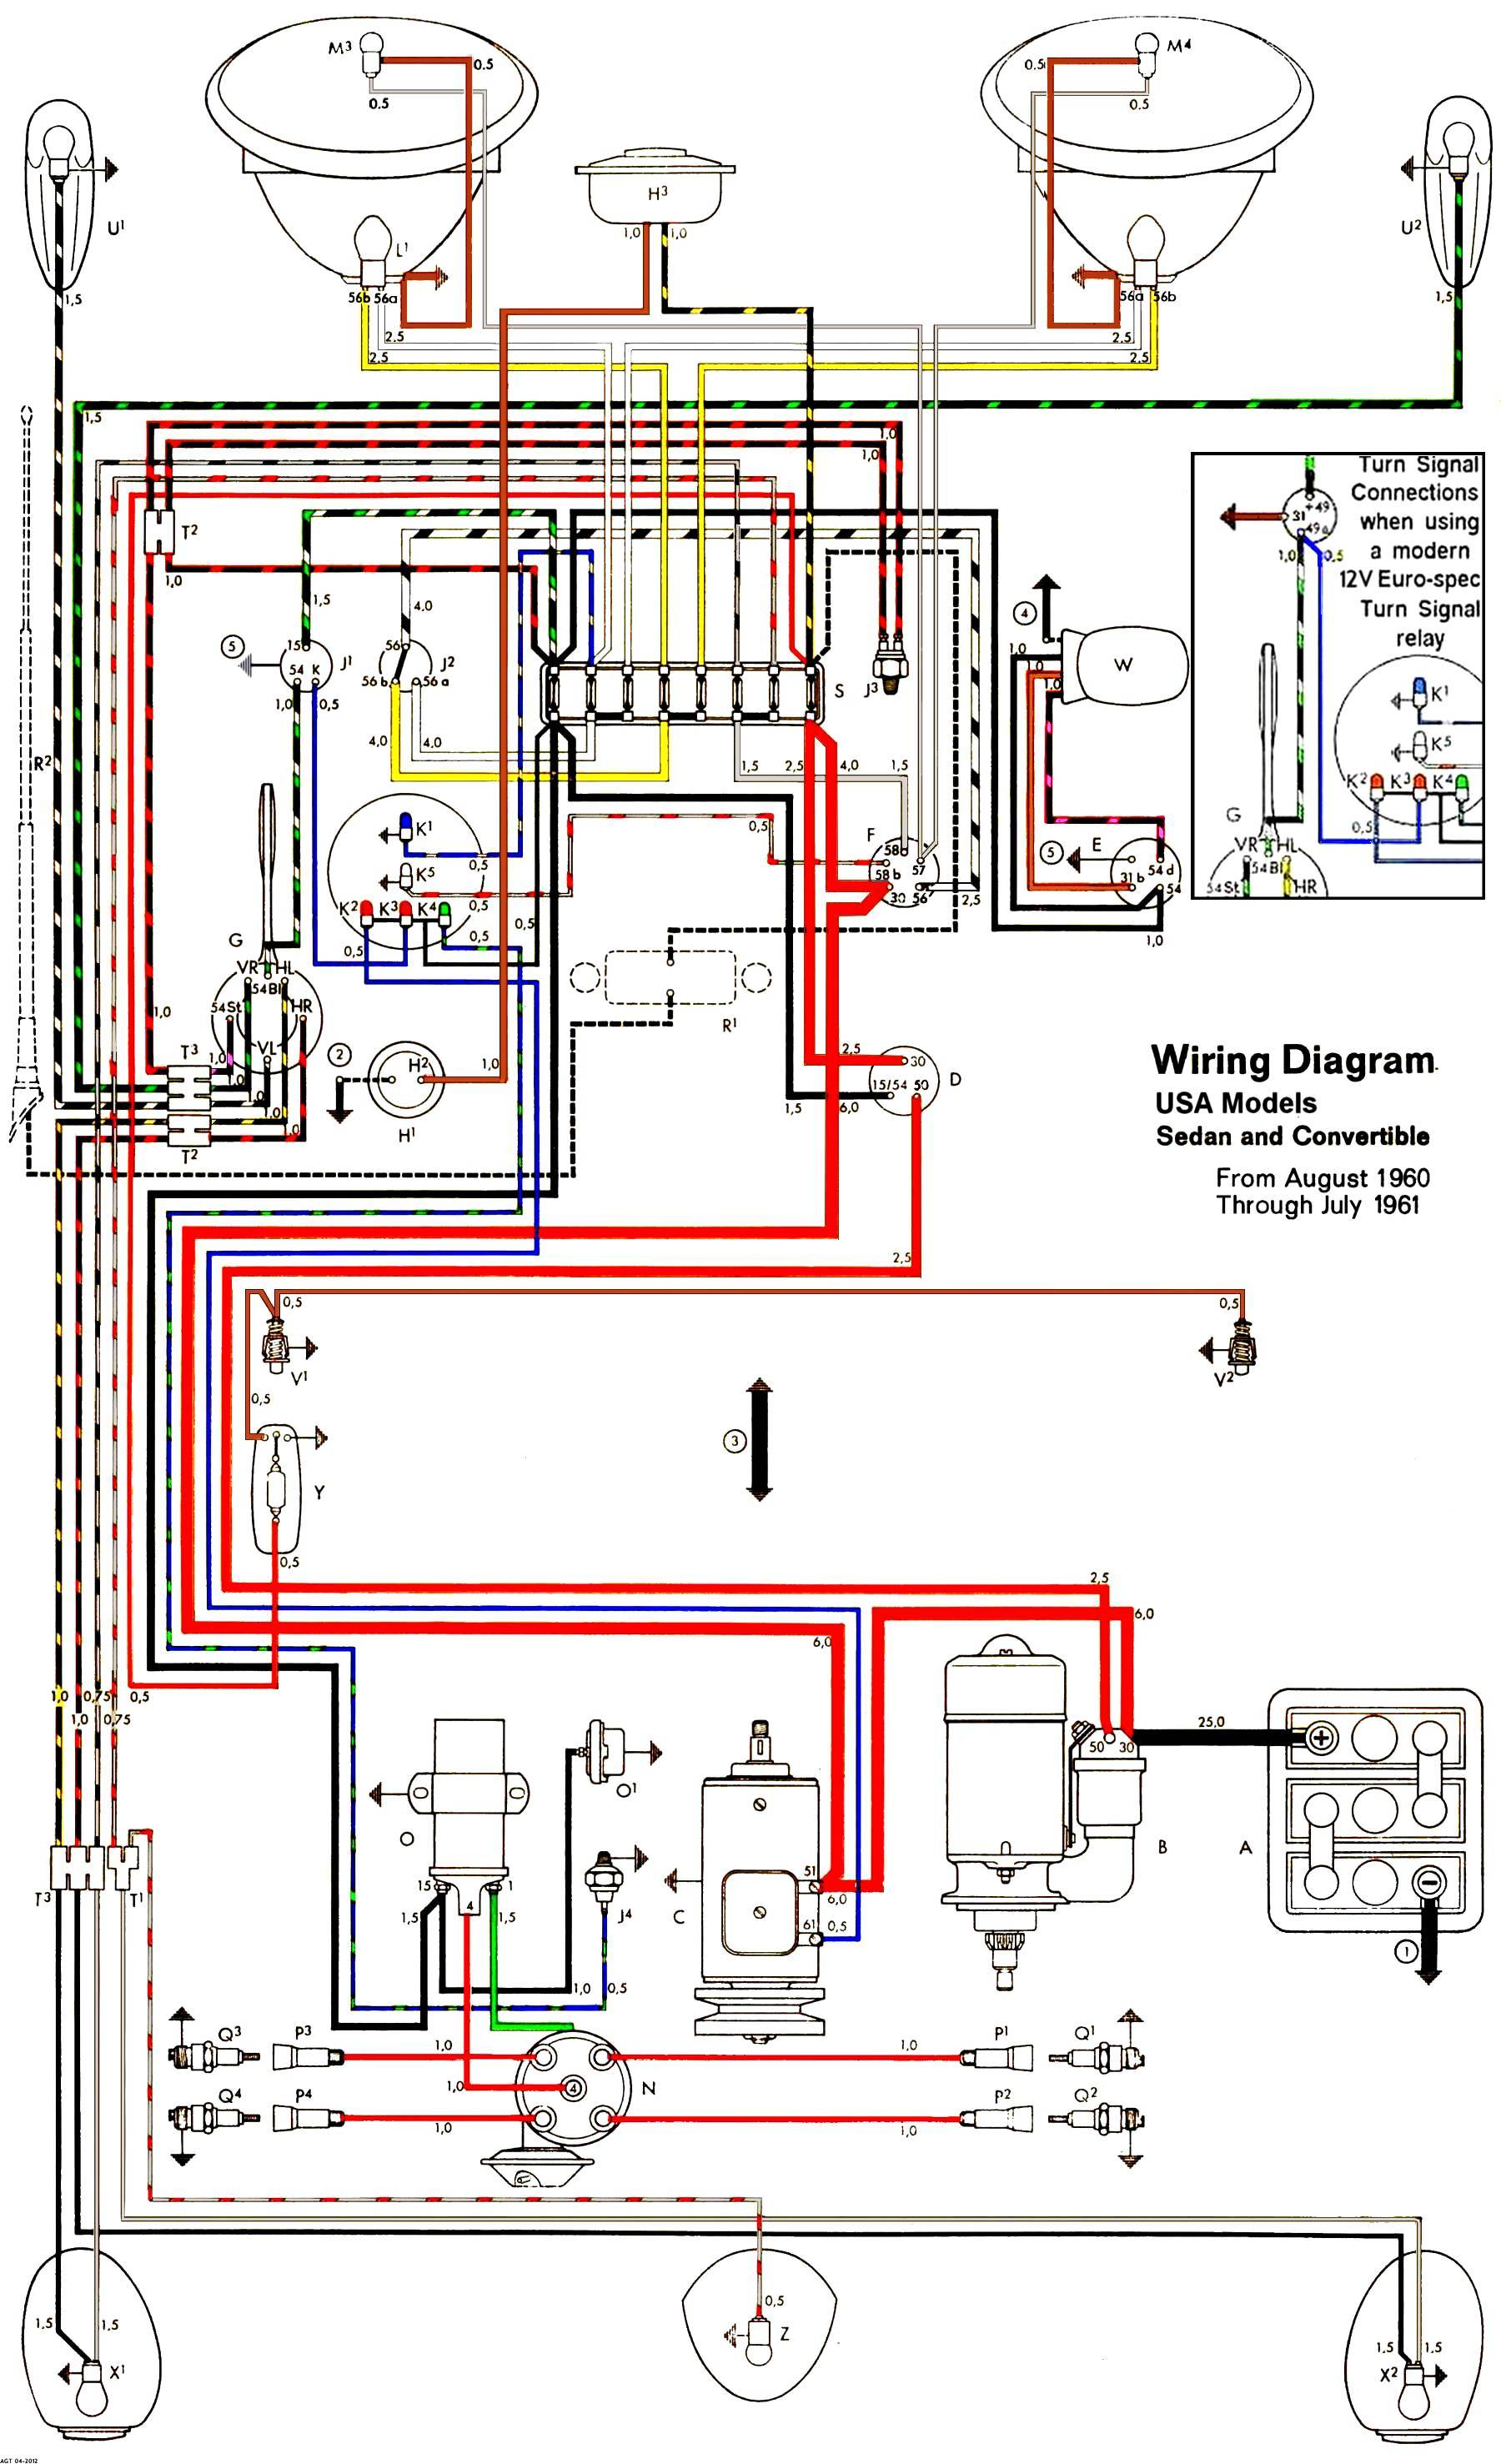 thesamba com type 1 wiring diagrams 2001 Volkswagen Beetle Wiring Diagram 1960 Vw Beetle Wiring Diagram #4